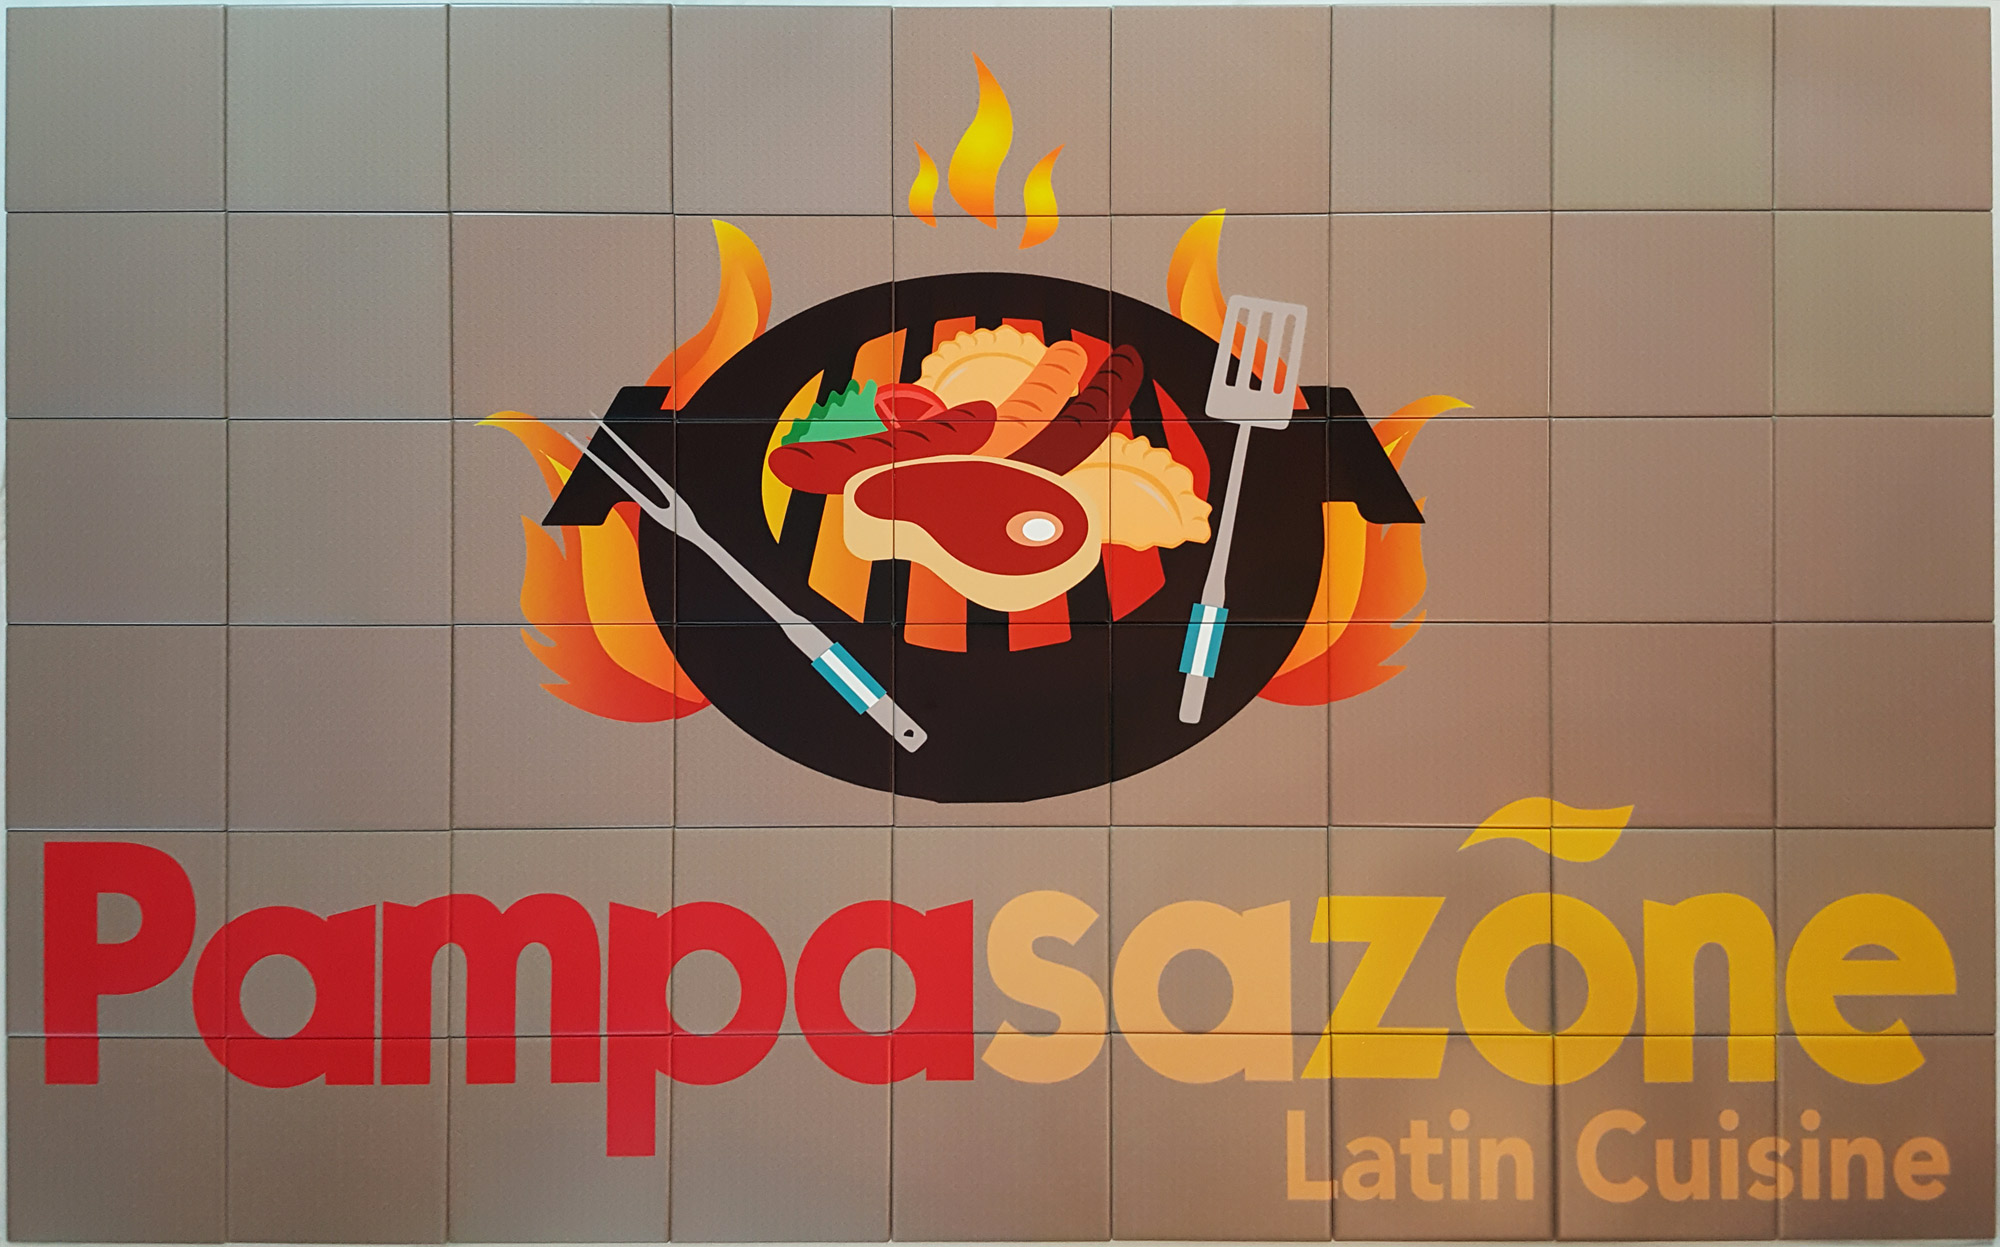 Pampa Restaurant Ceramic Tile Mural